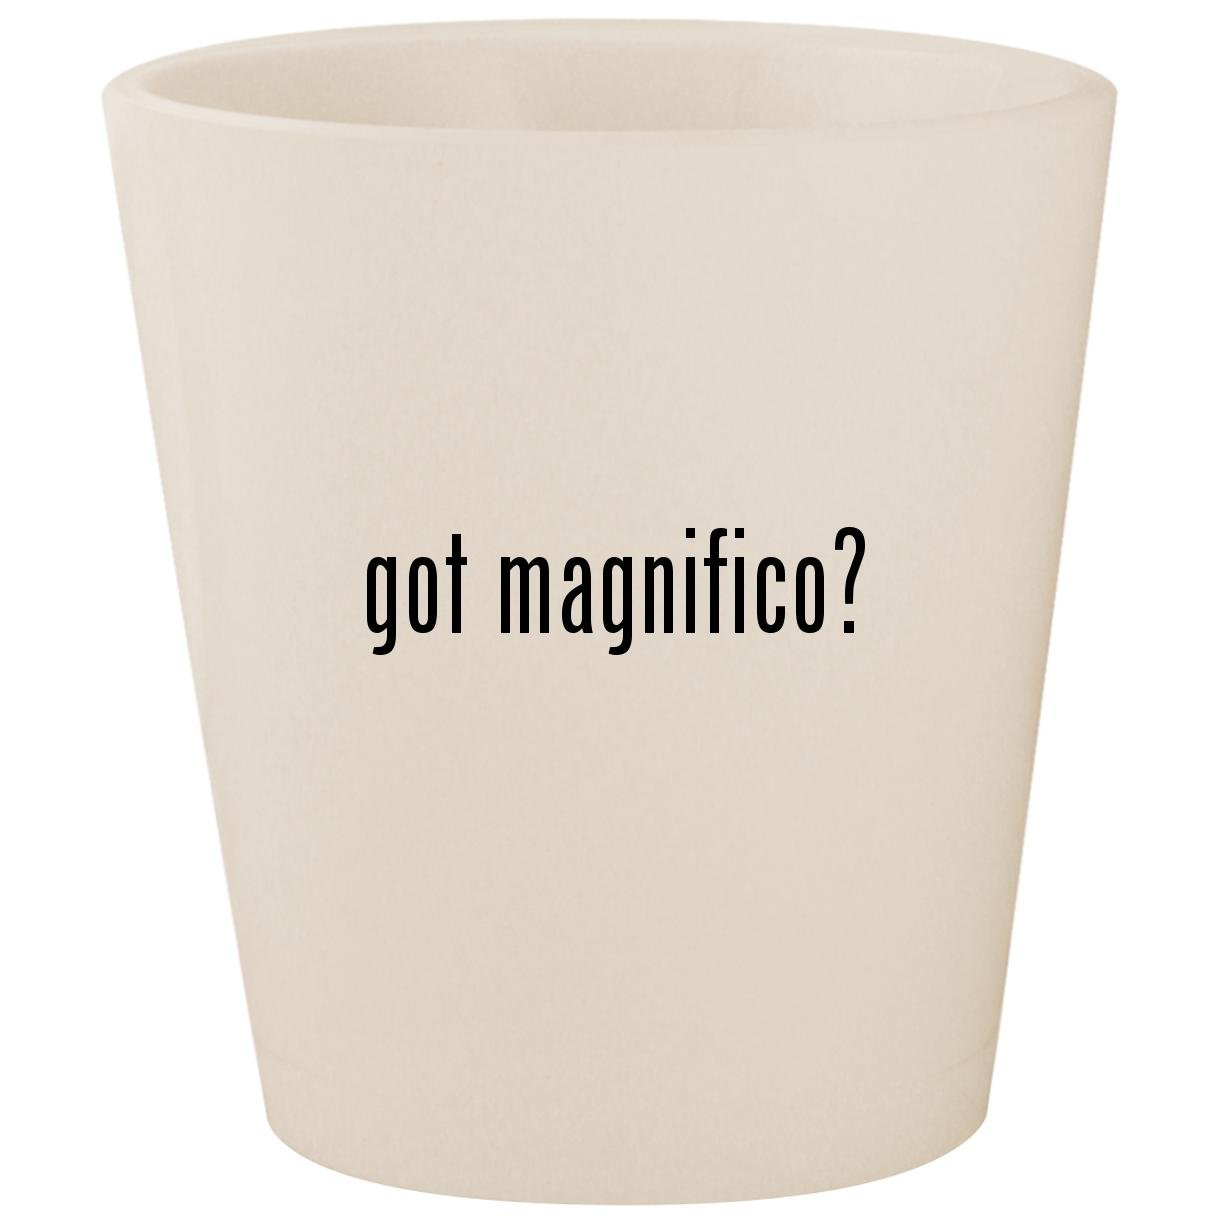 got magnifico? - White Ceramic 1.5oz Shot Glass